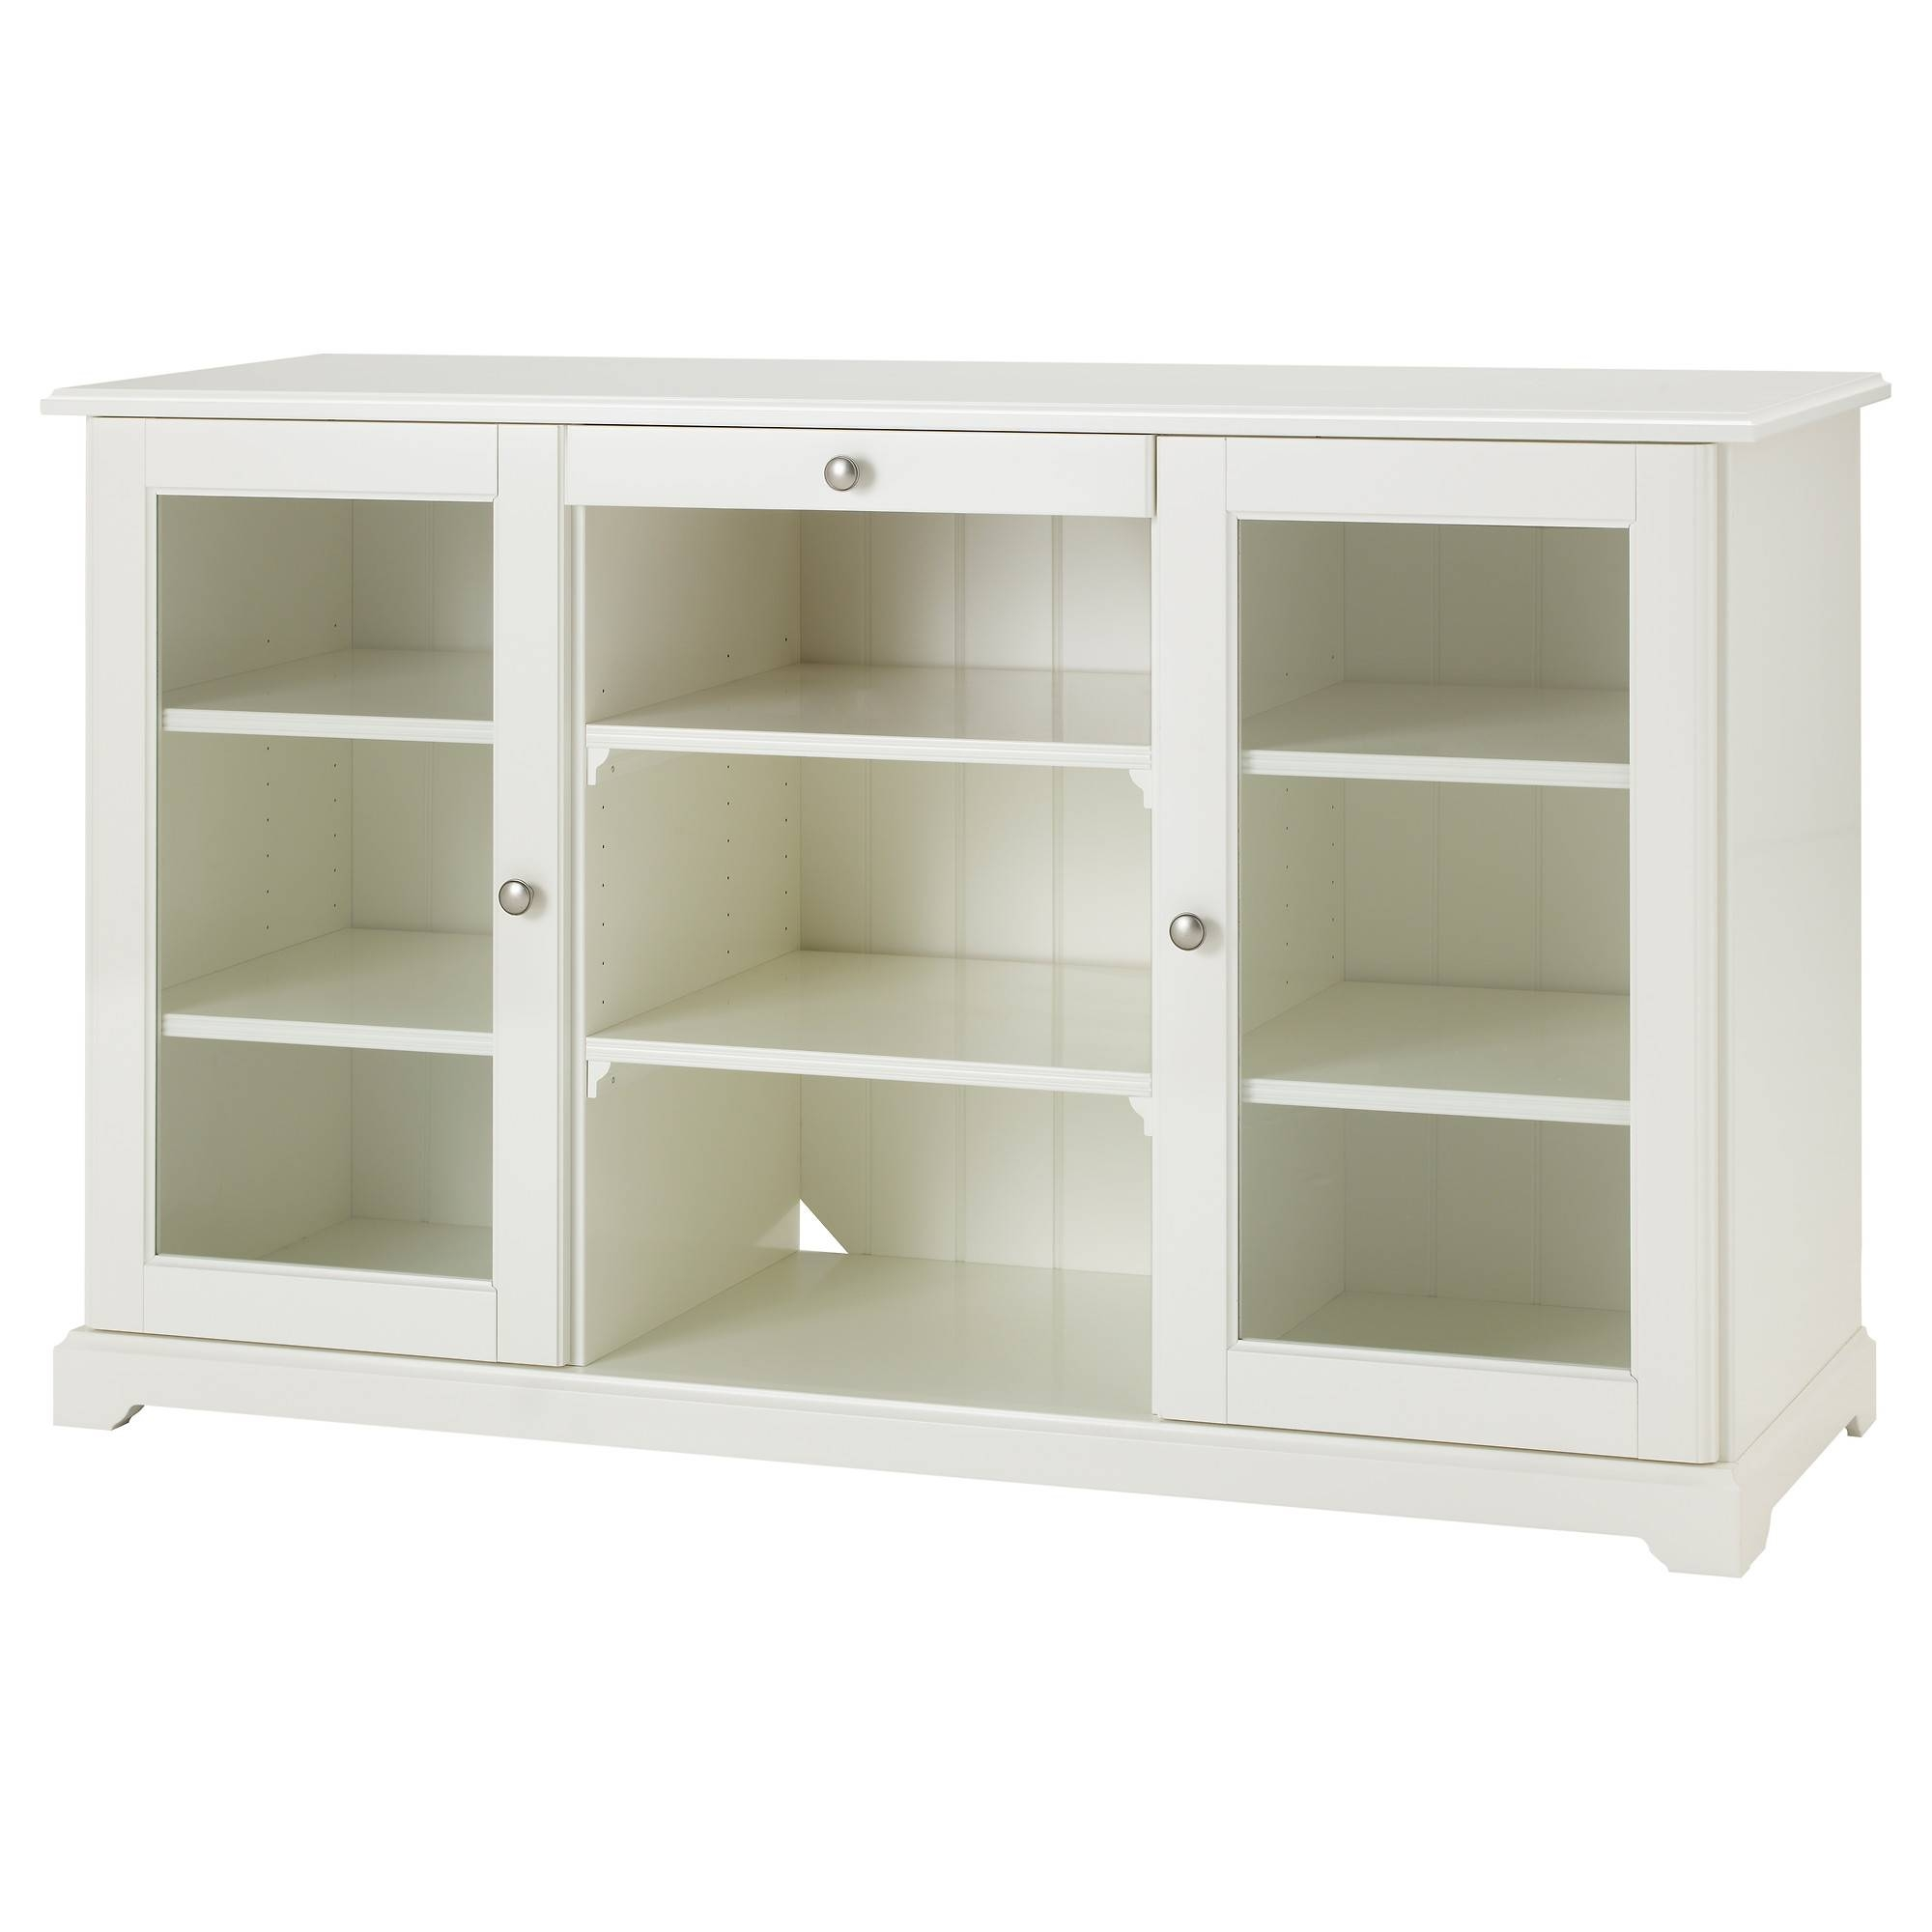 Buffet Tables & Sideboards - Ikea regarding White Wooden Sideboards (Image 5 of 30)